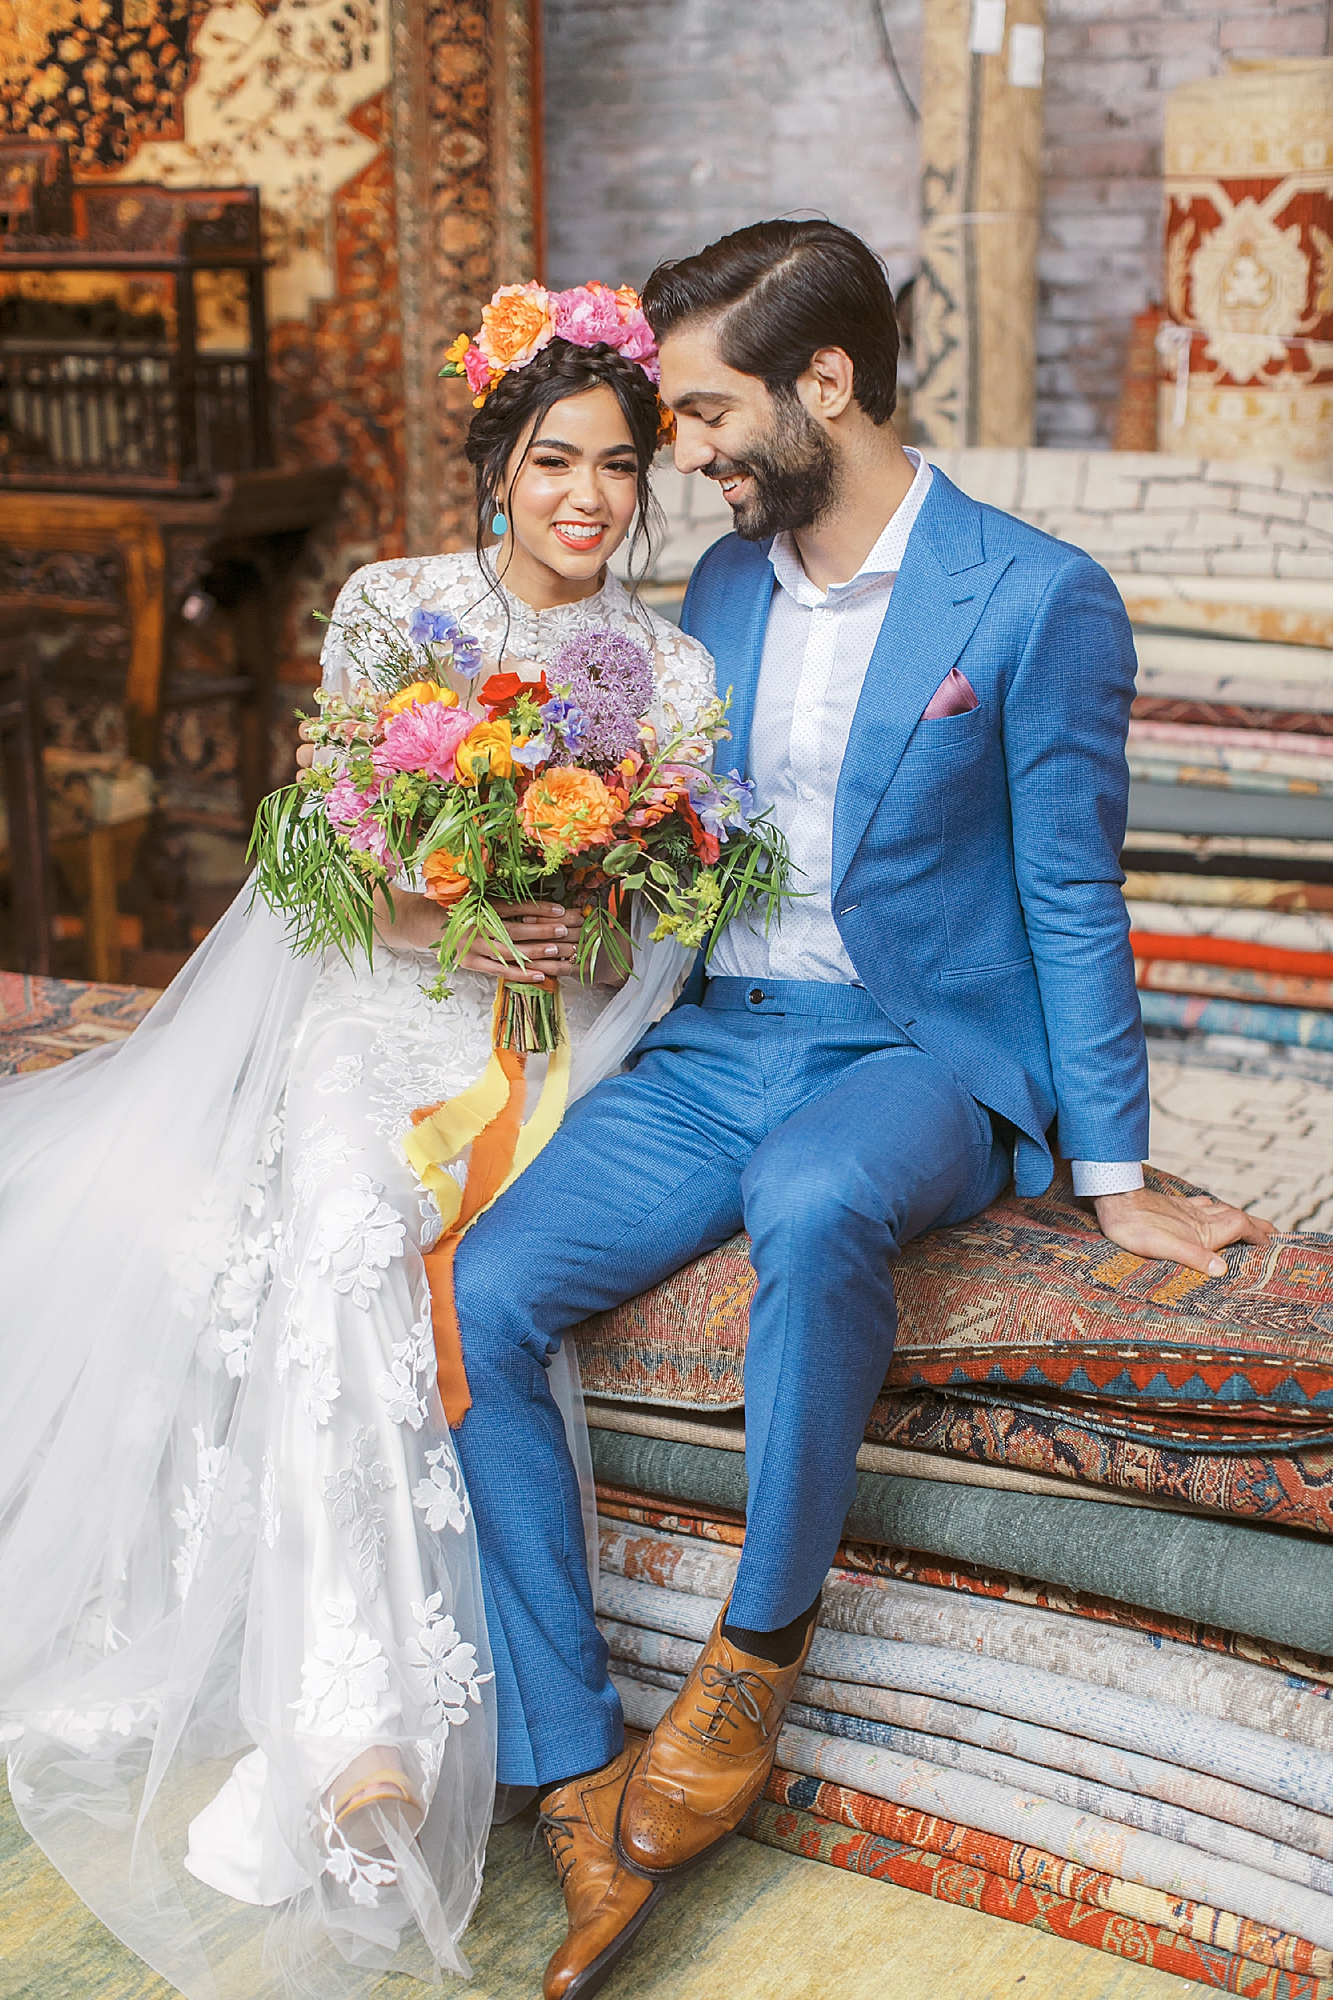 Vibrant and Colorful Frida Kahlo Inspired Wedding Photography by Magdalena Studios 0020